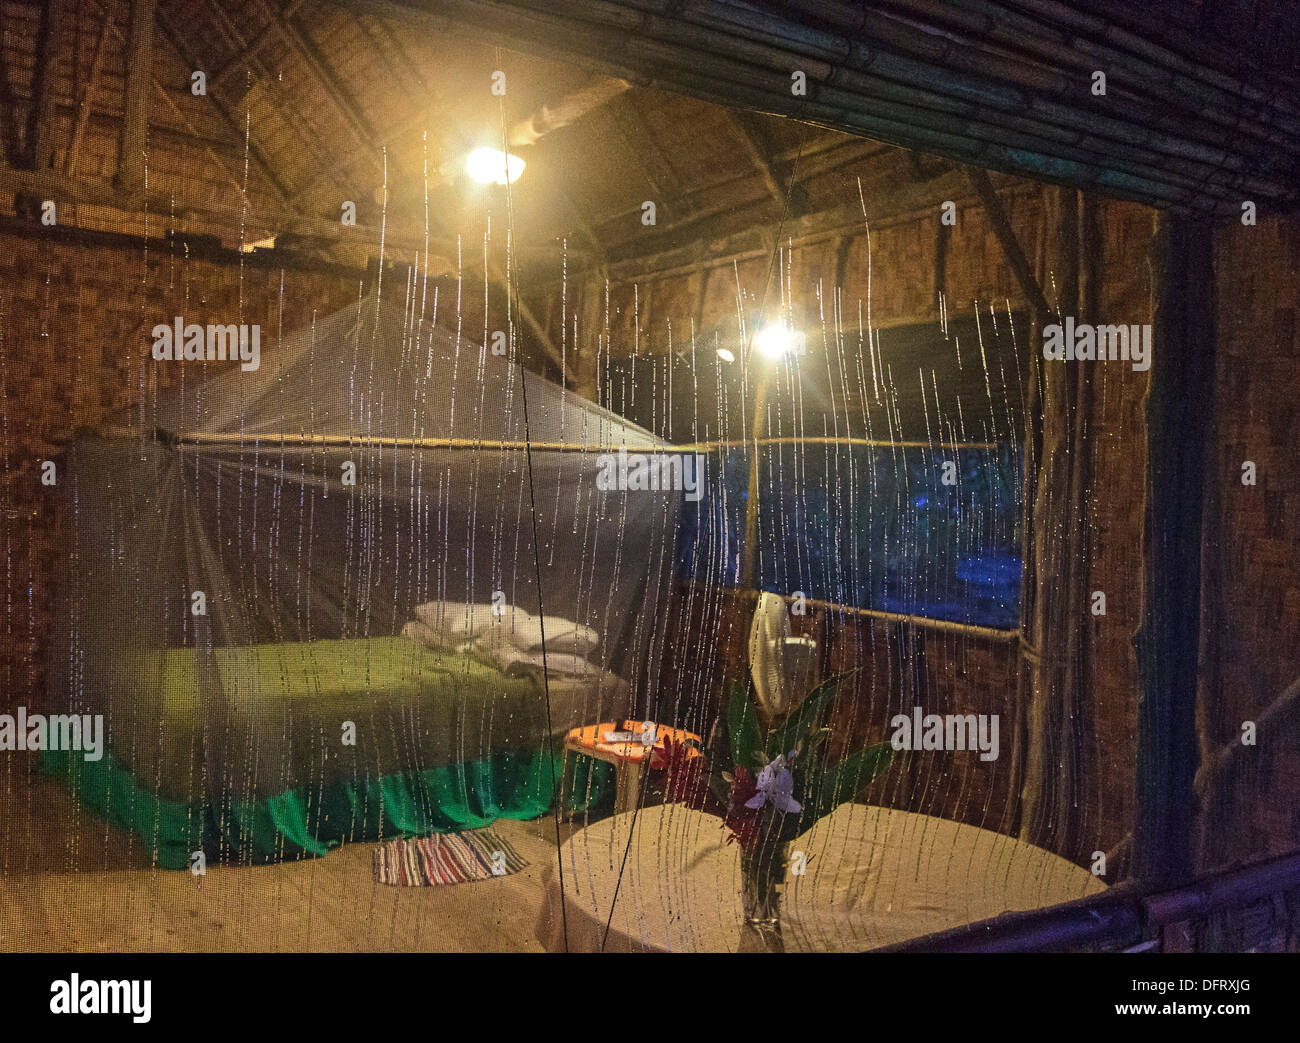 Runners of condensation sparkle in dawn light on the screen of visitor's cabin at Kosrae Village Eco Resort, Kosrae, Micronesia - Stock Image